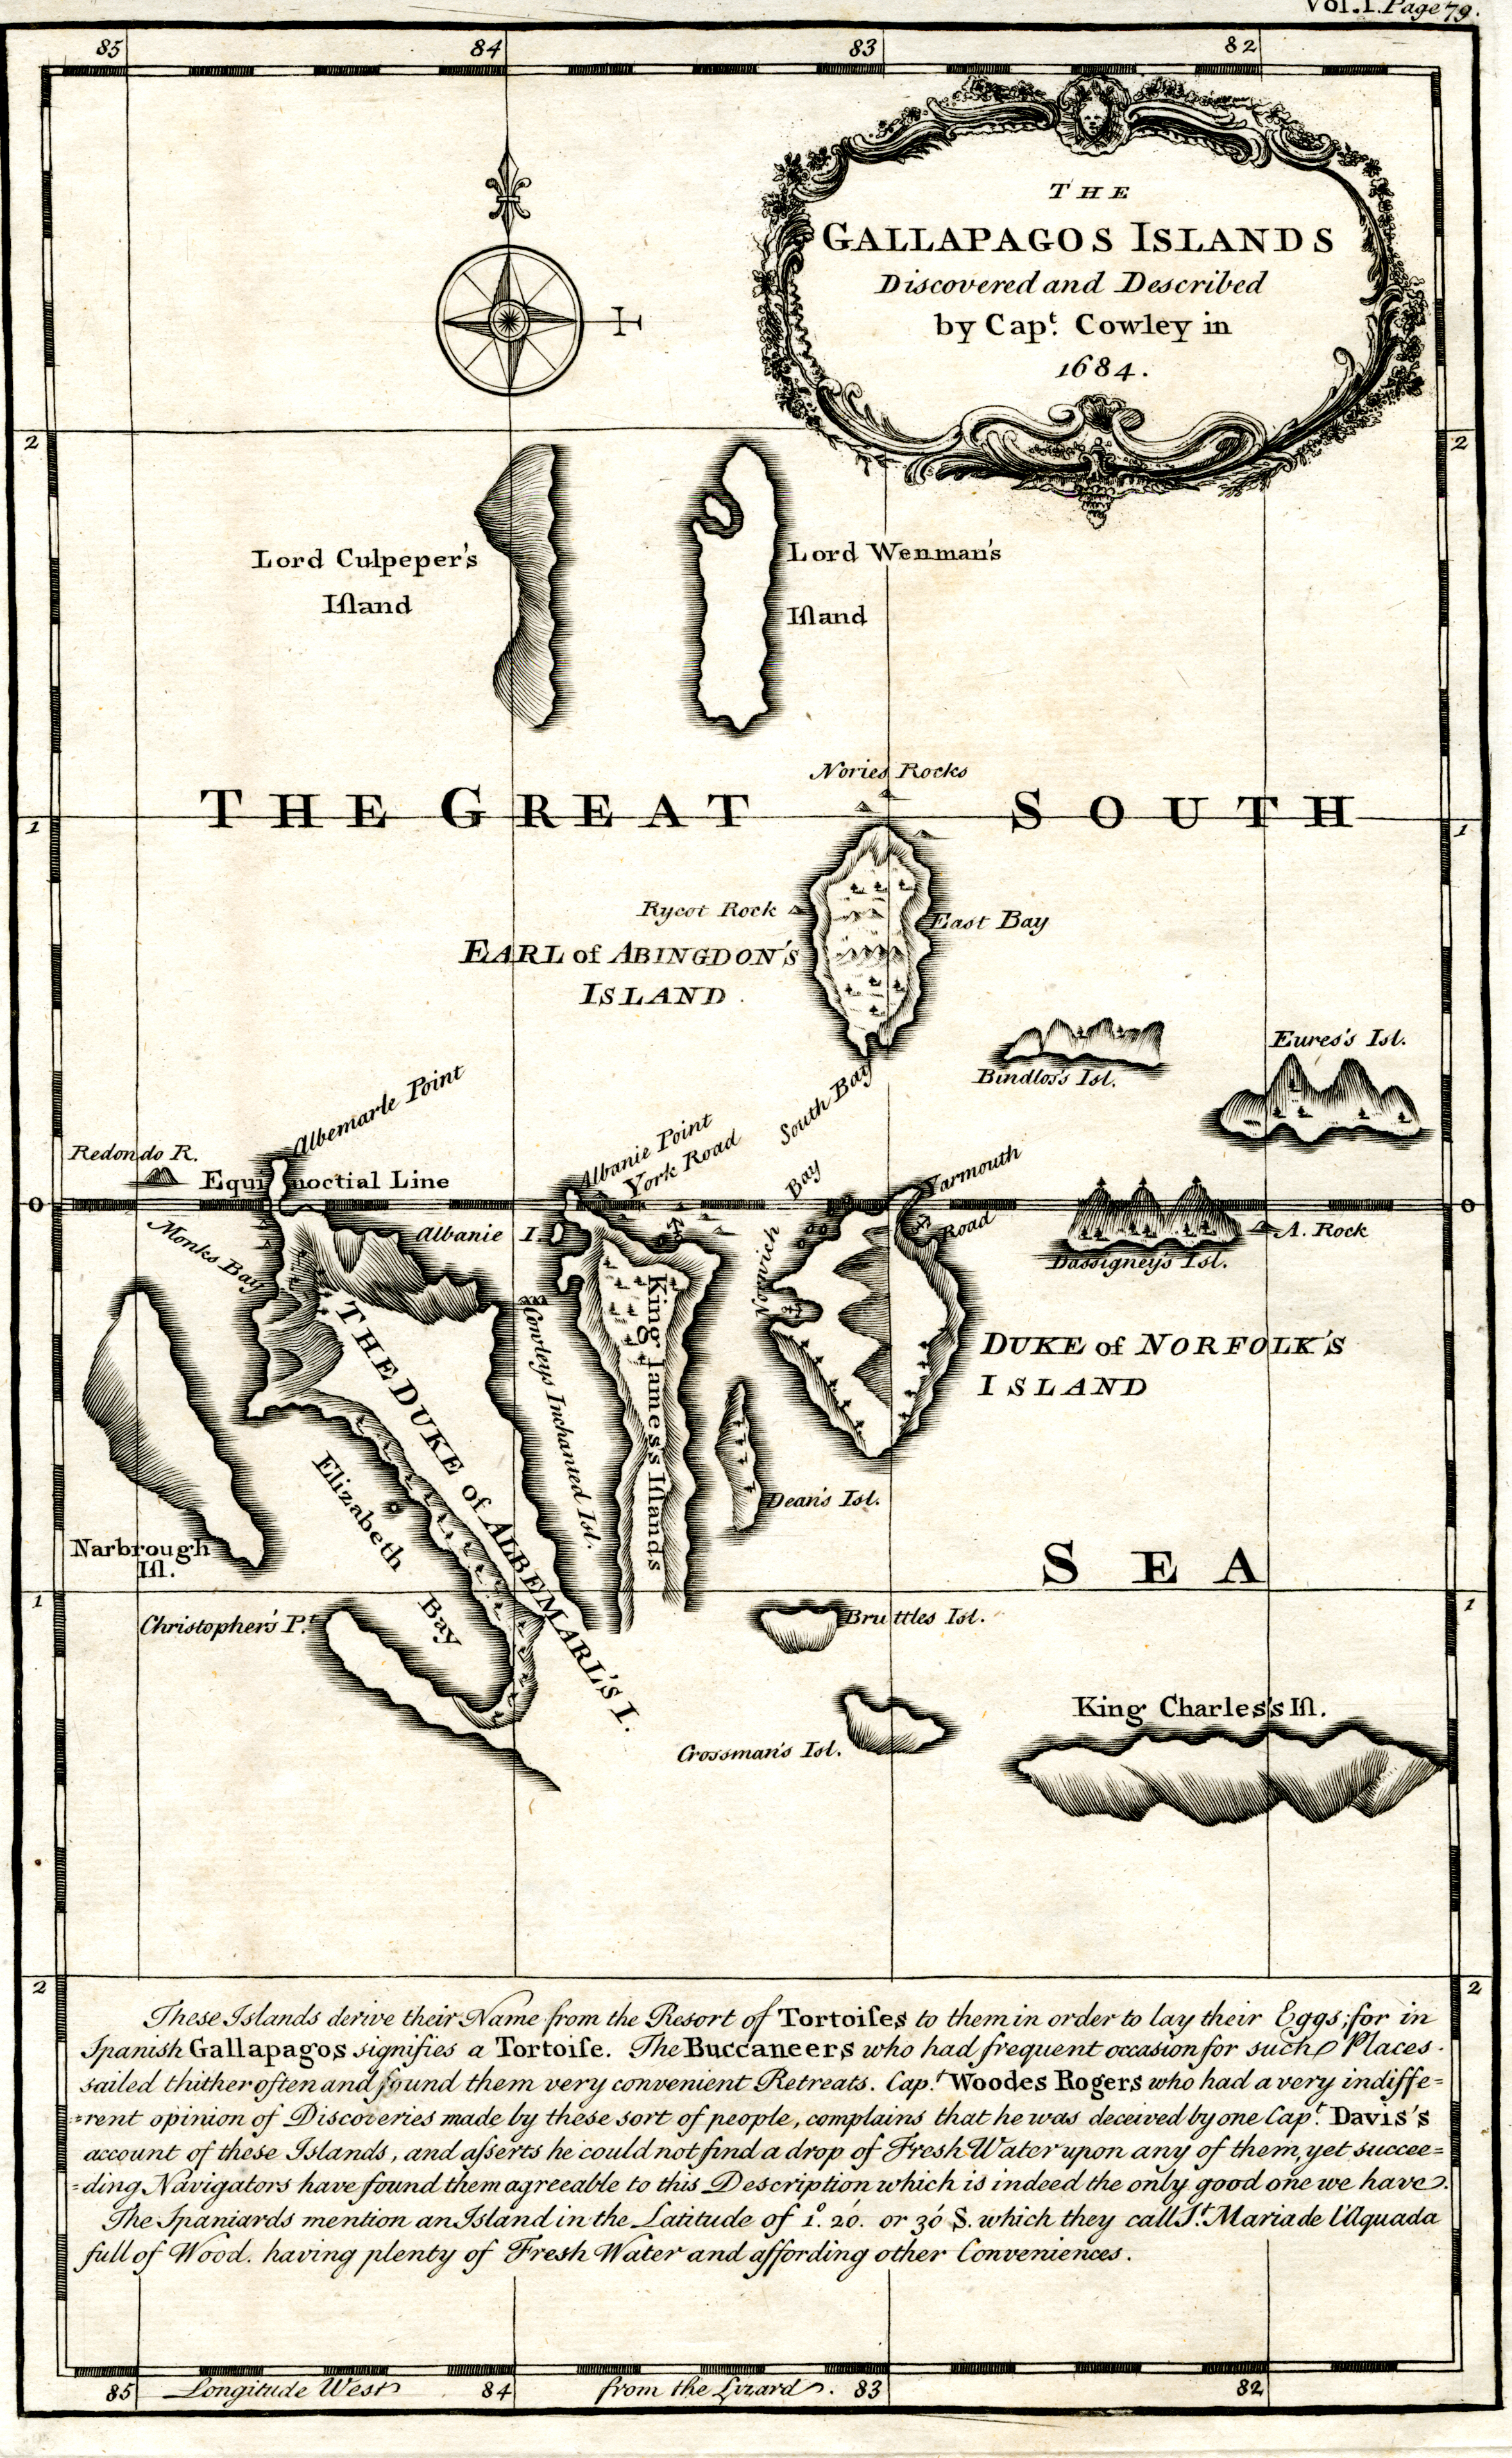 File:Gallapagos Islands 1684.jpg